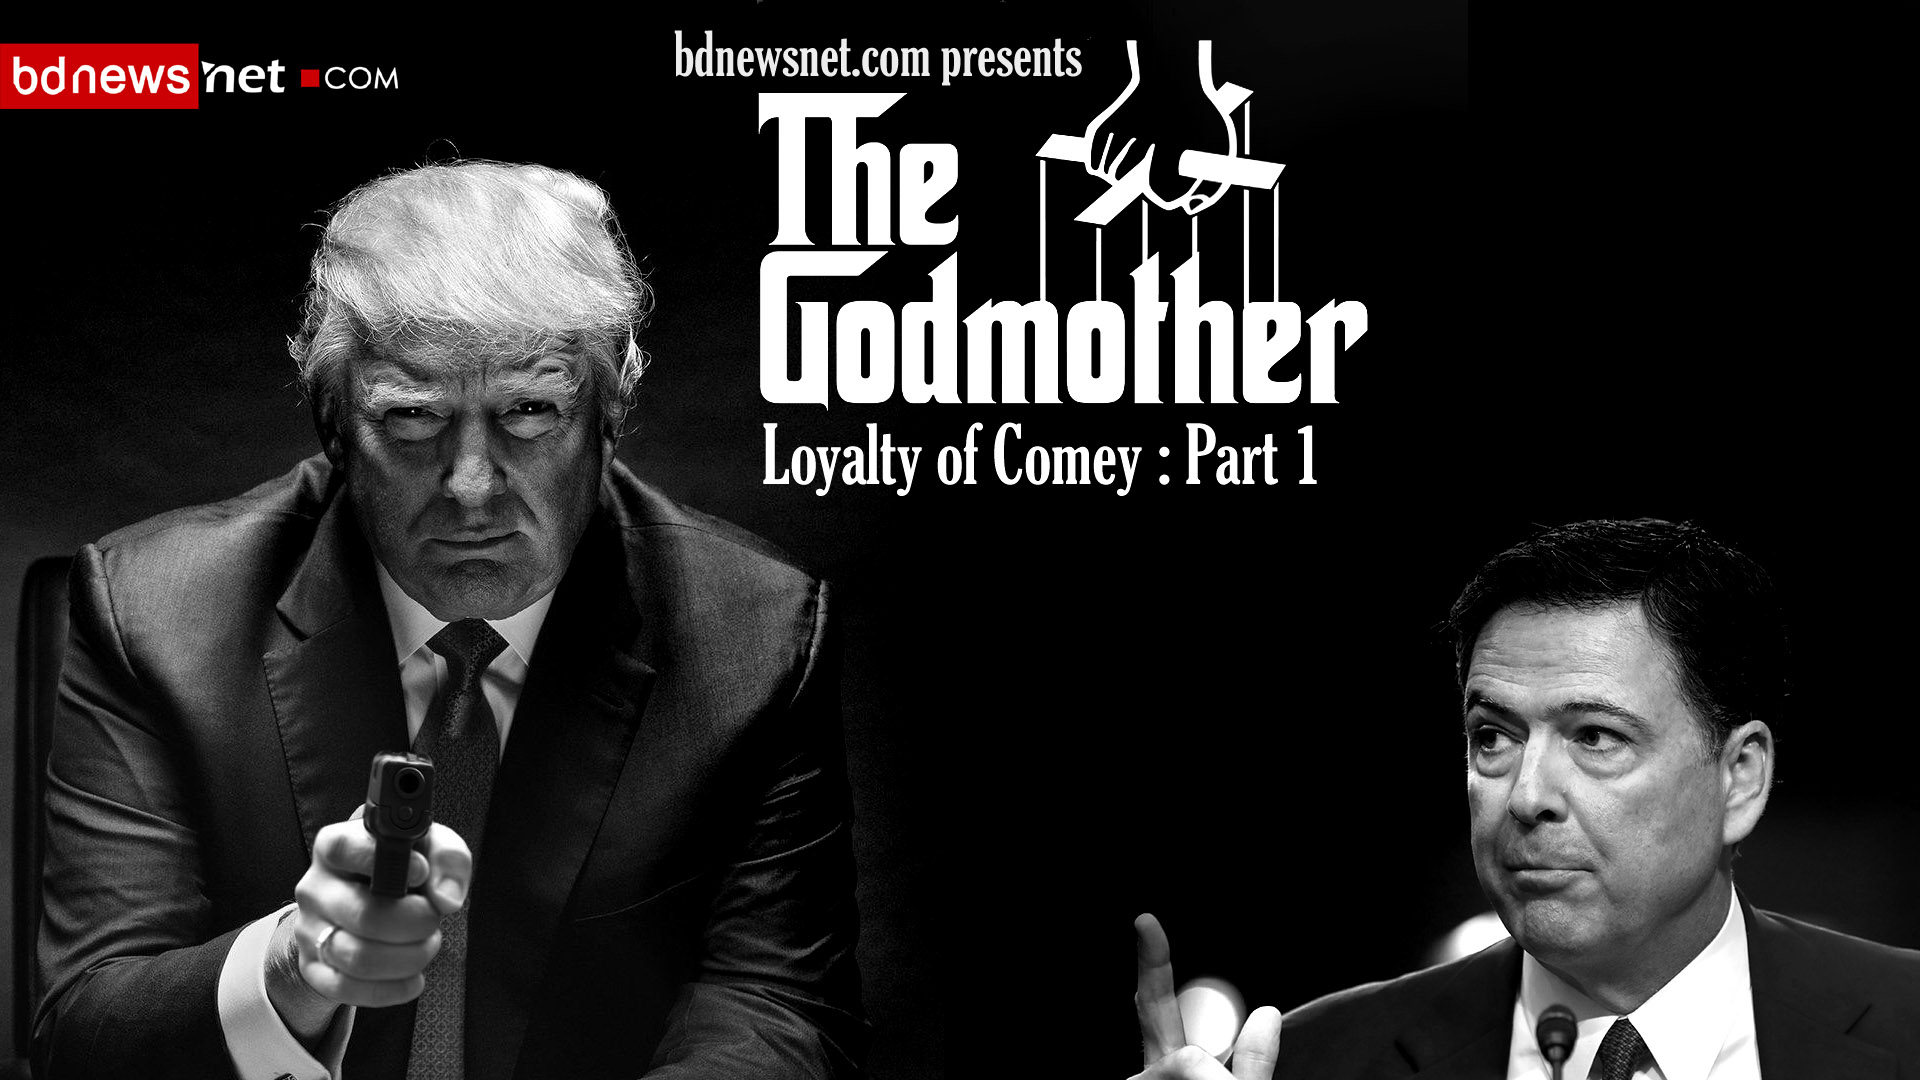 trump-comey-mafia-godfather-loyalty-2018-baddass-